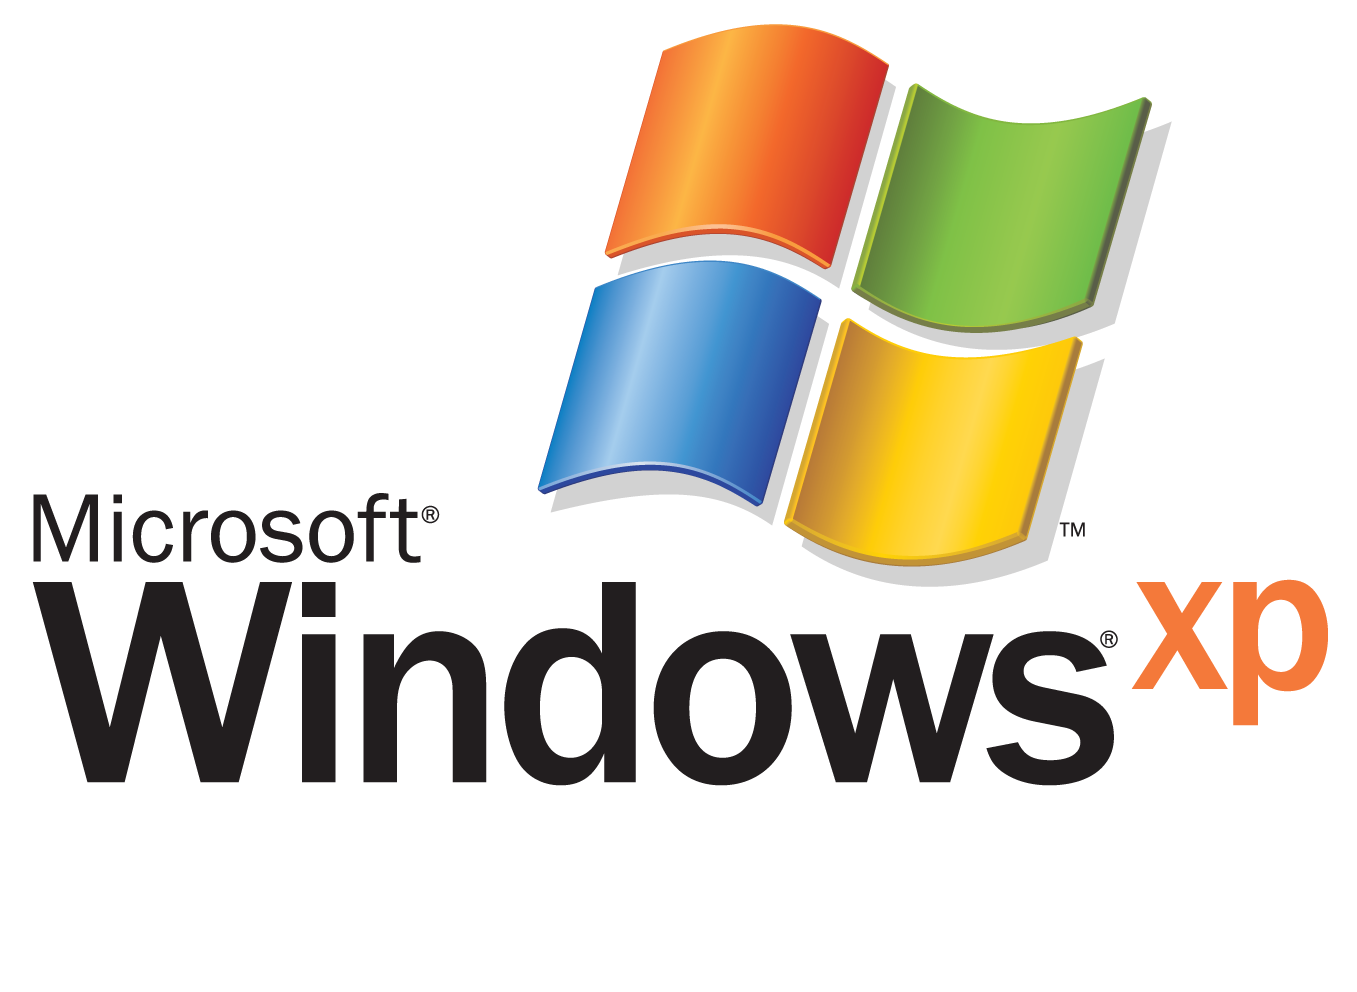 windows xp research paper That is why you have to write linux vs windows research paper to make it out if [] follow us coursework writing tips dissertation writing essay writing tips.